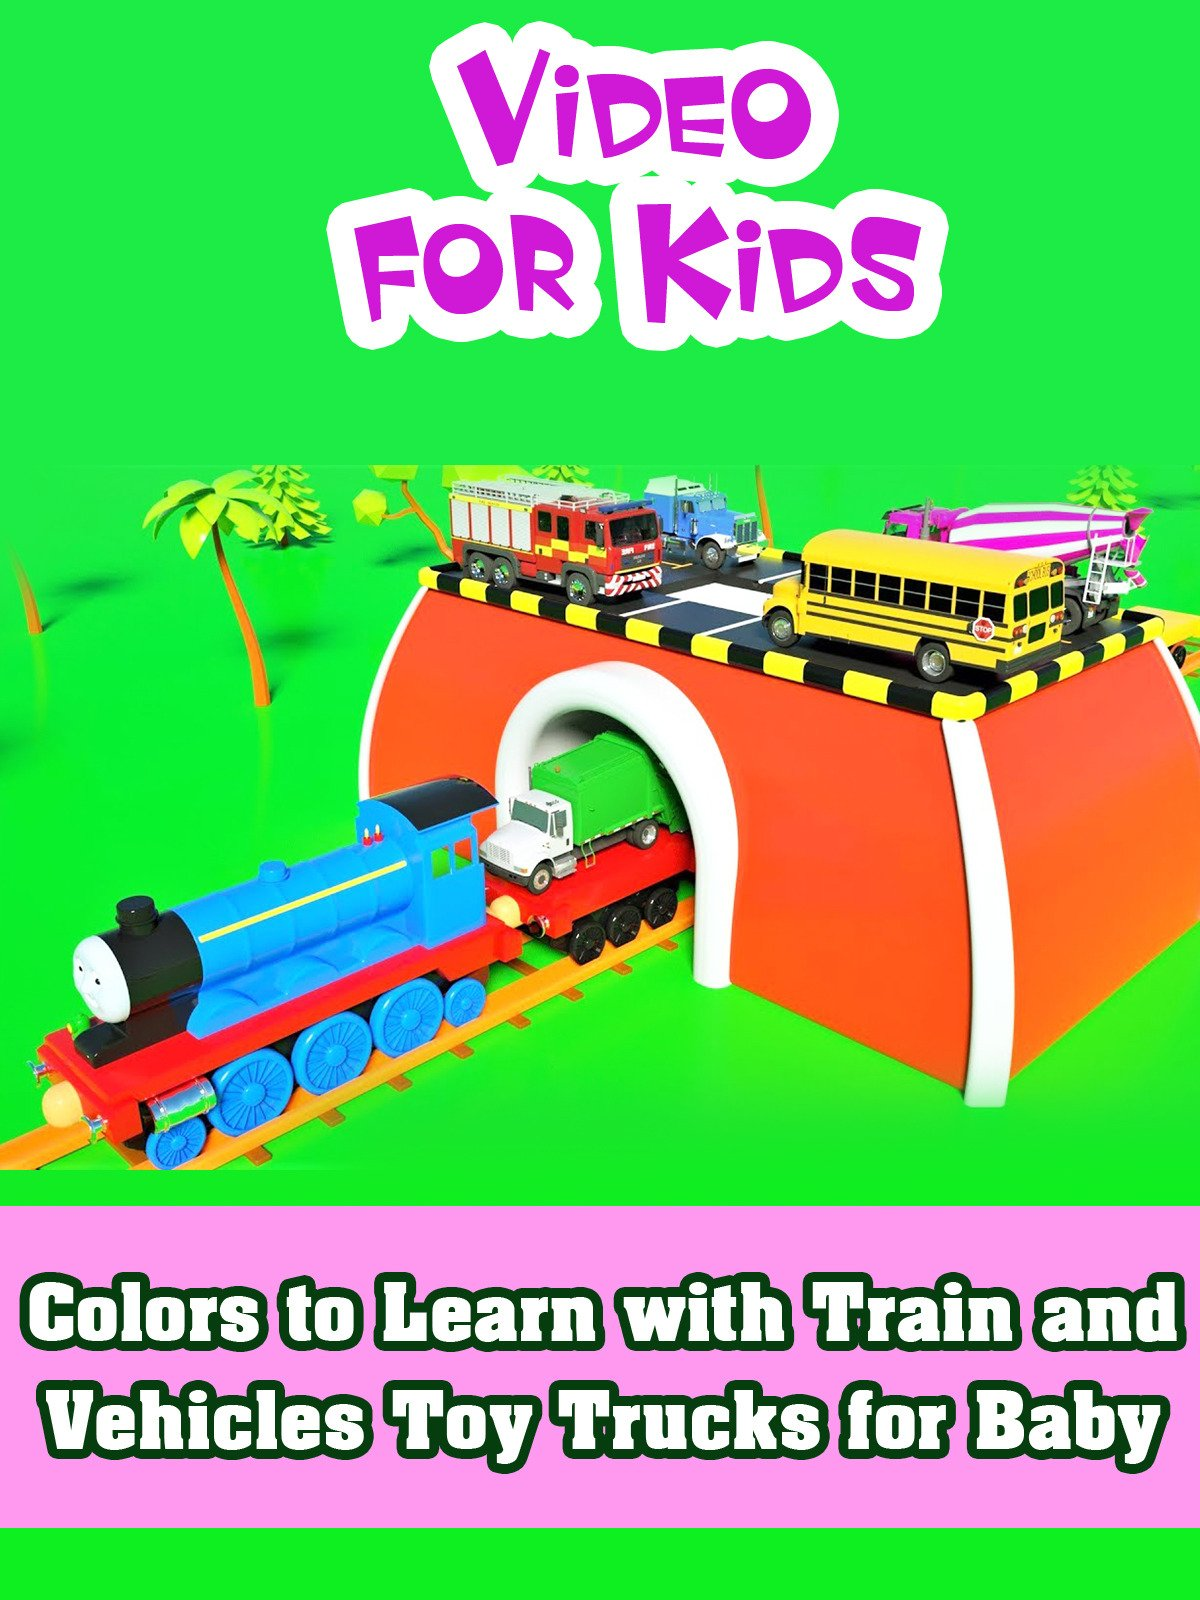 Colors to Learn with Train and Vehicles Toy Trucks for Baby